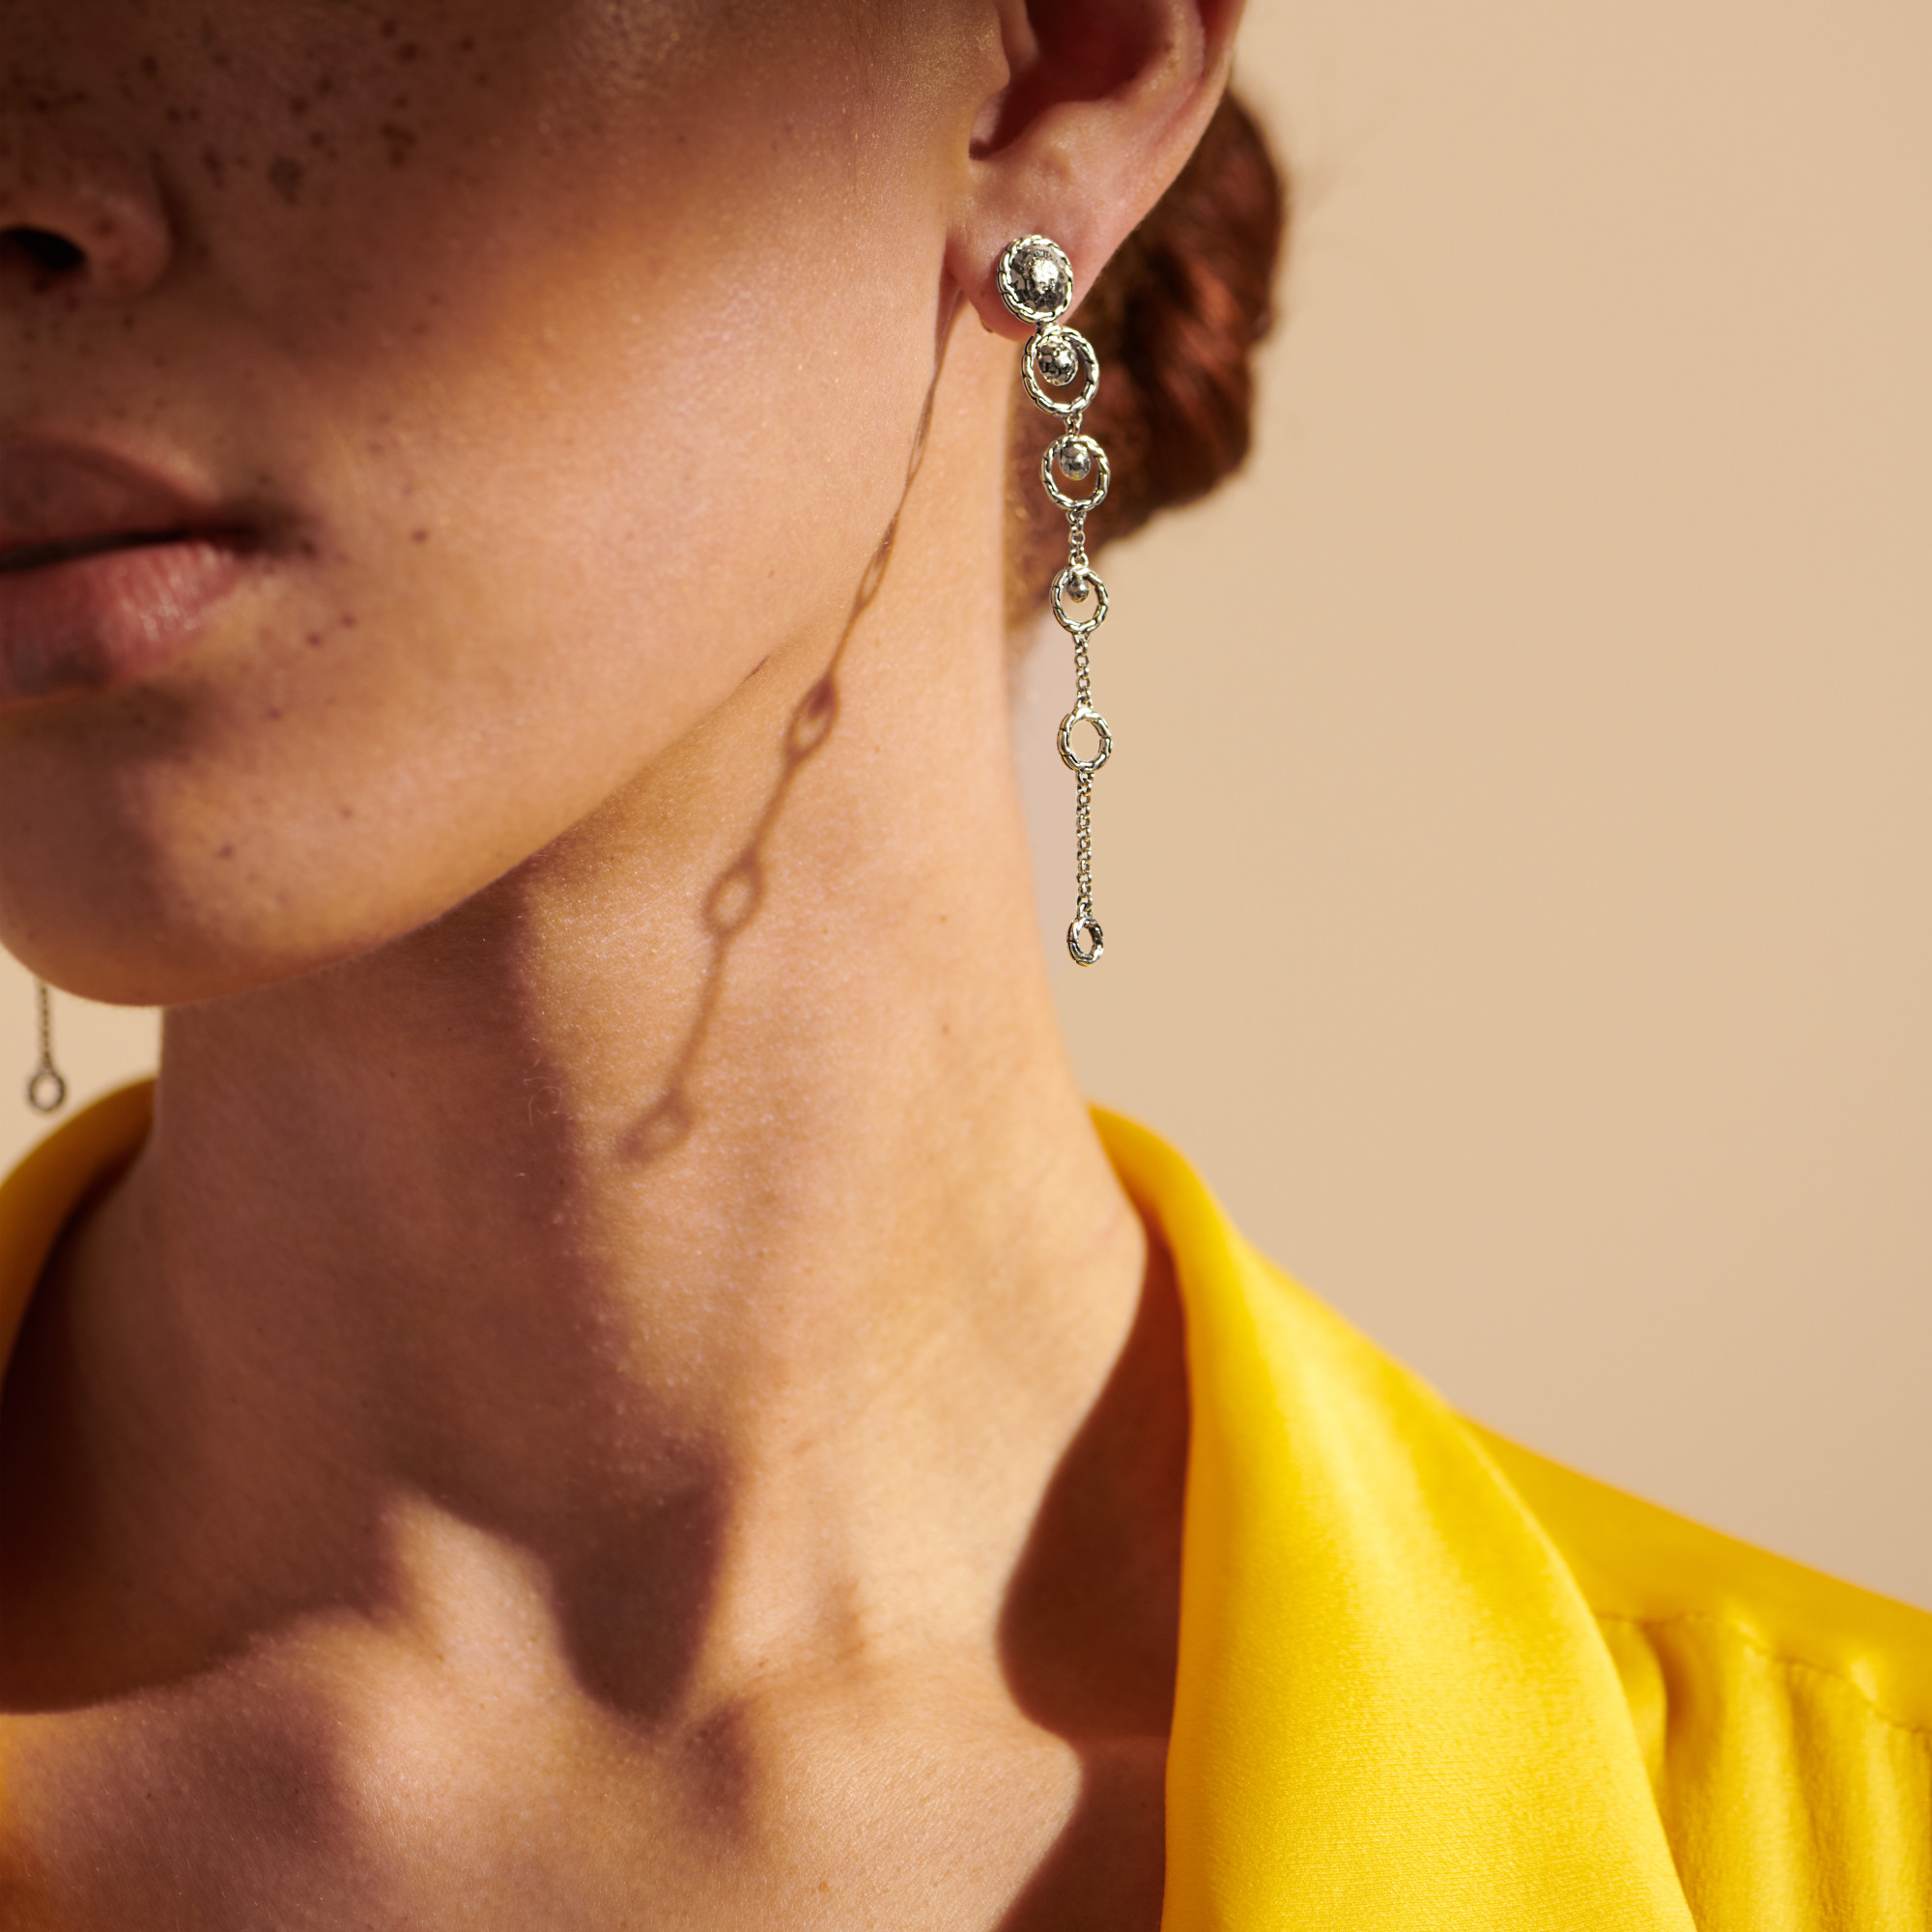 Dot Drop Earring in Hammered Silver, , modelview